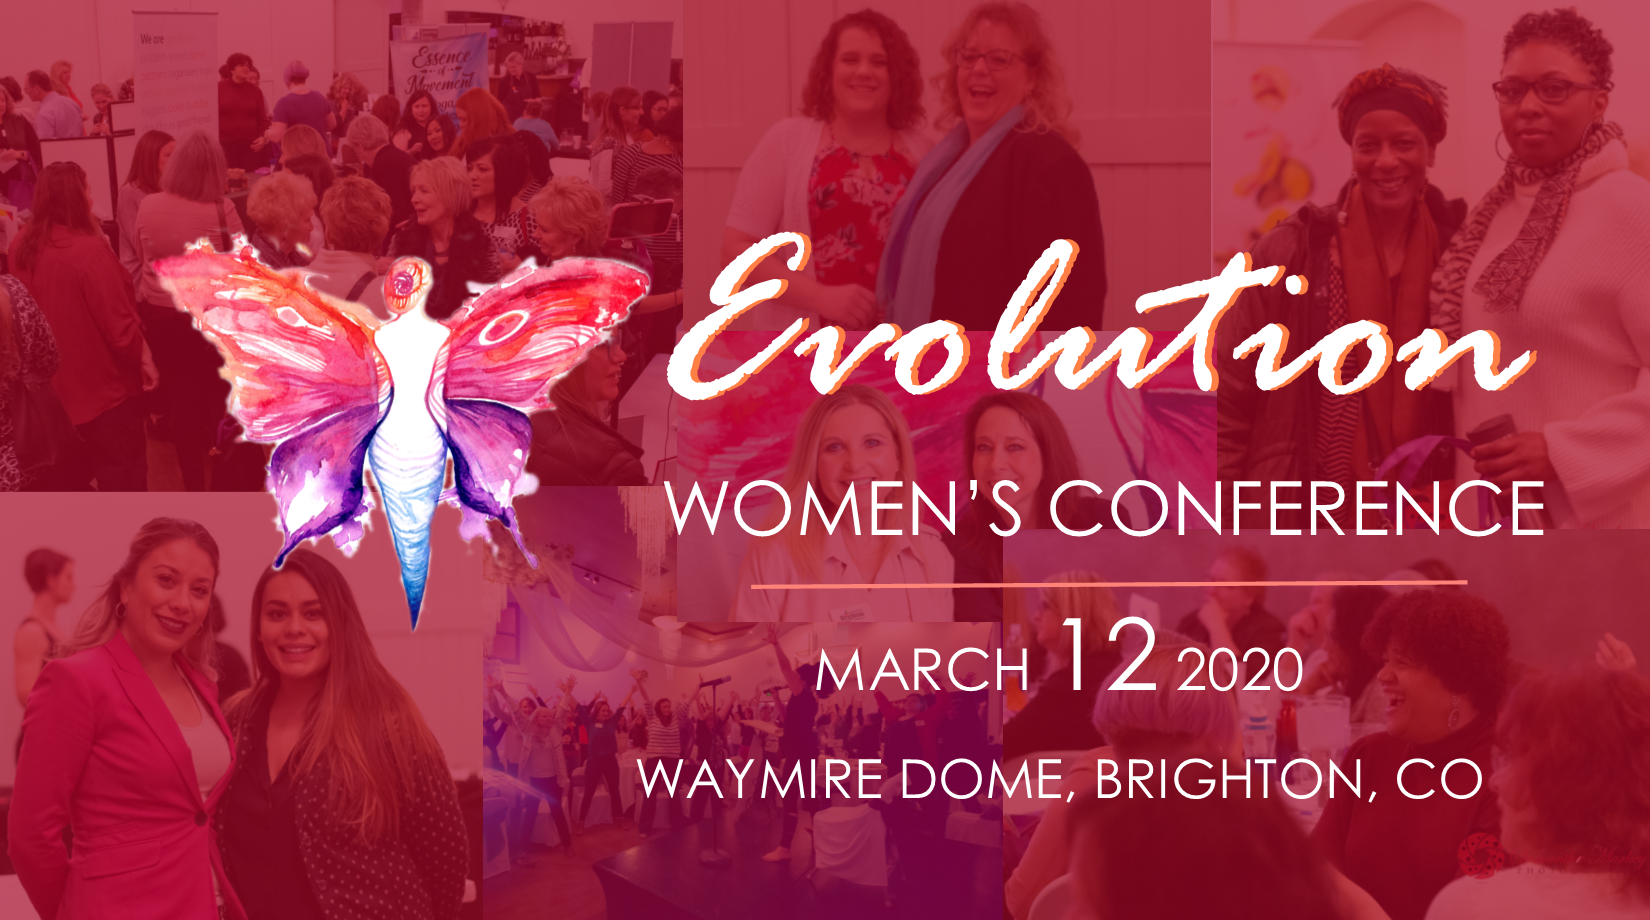 Evolution---Women's-Conference-Invite.png